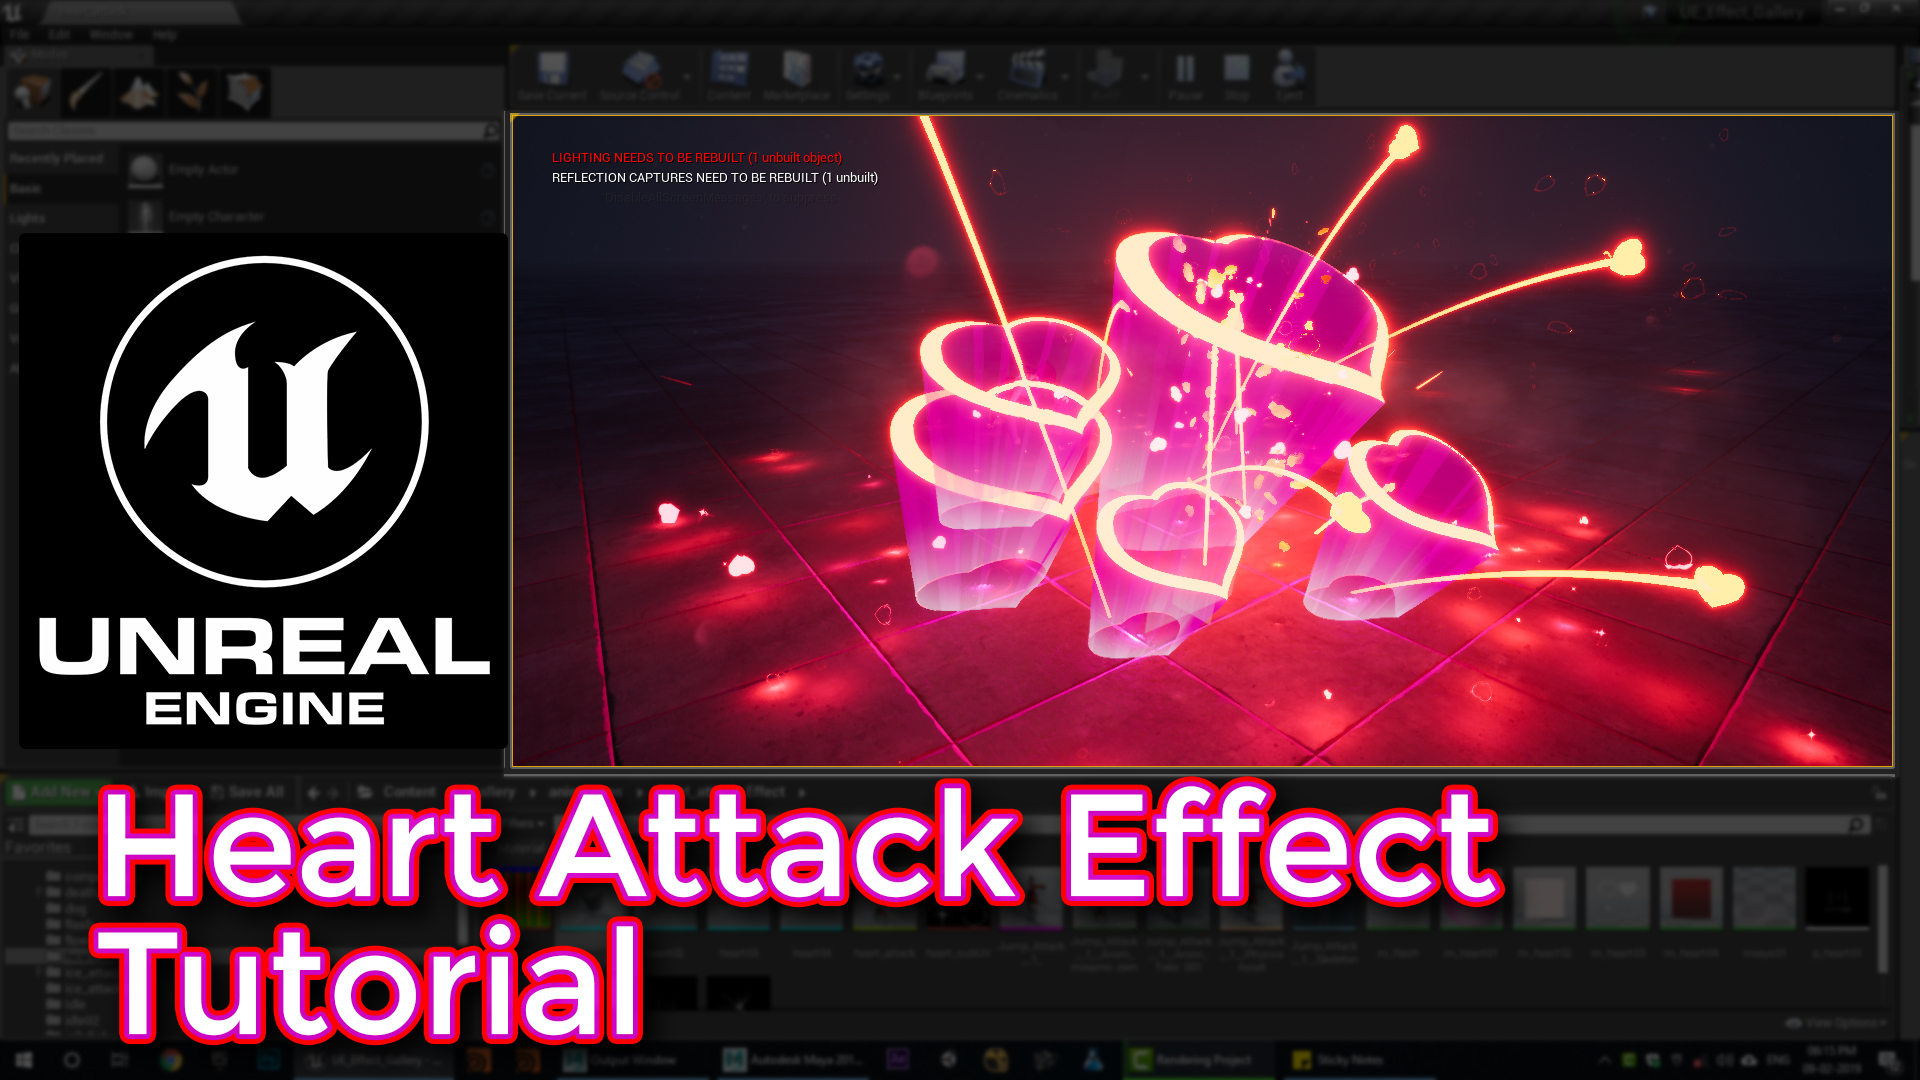 Unreal Engine Heart Attack Effect Tutorial